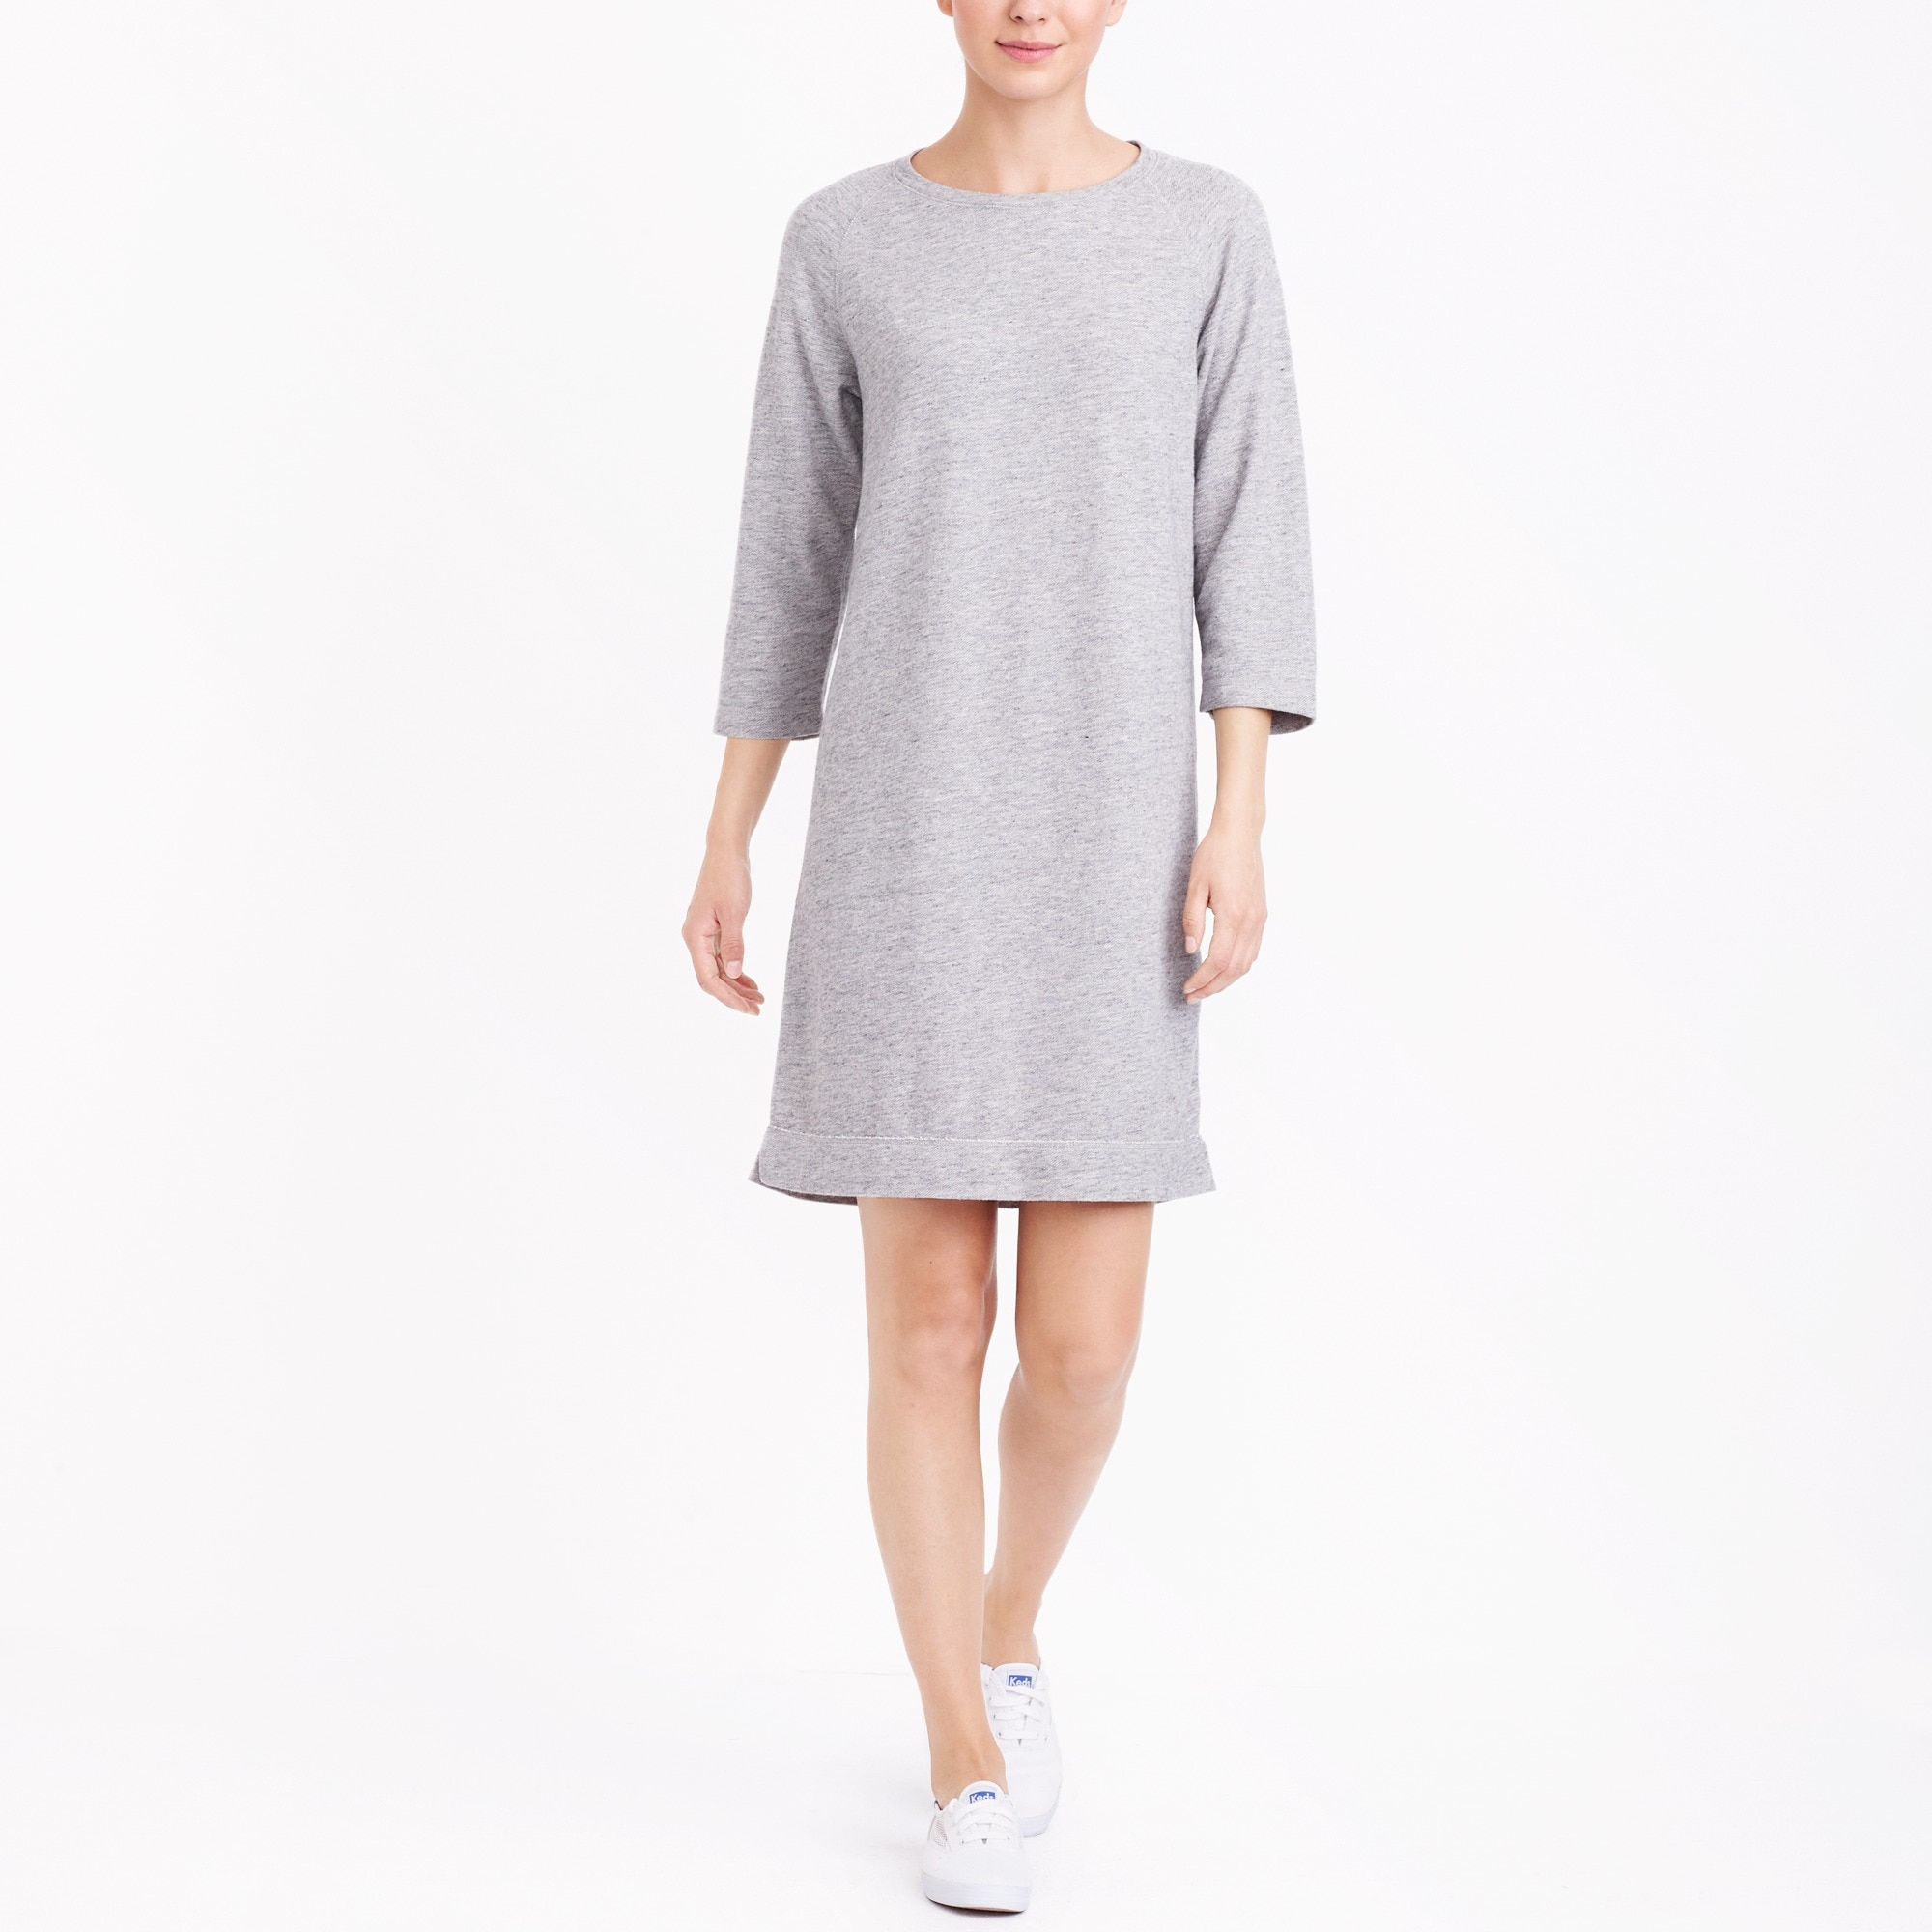 sweatshirt dress : factorywomen casual